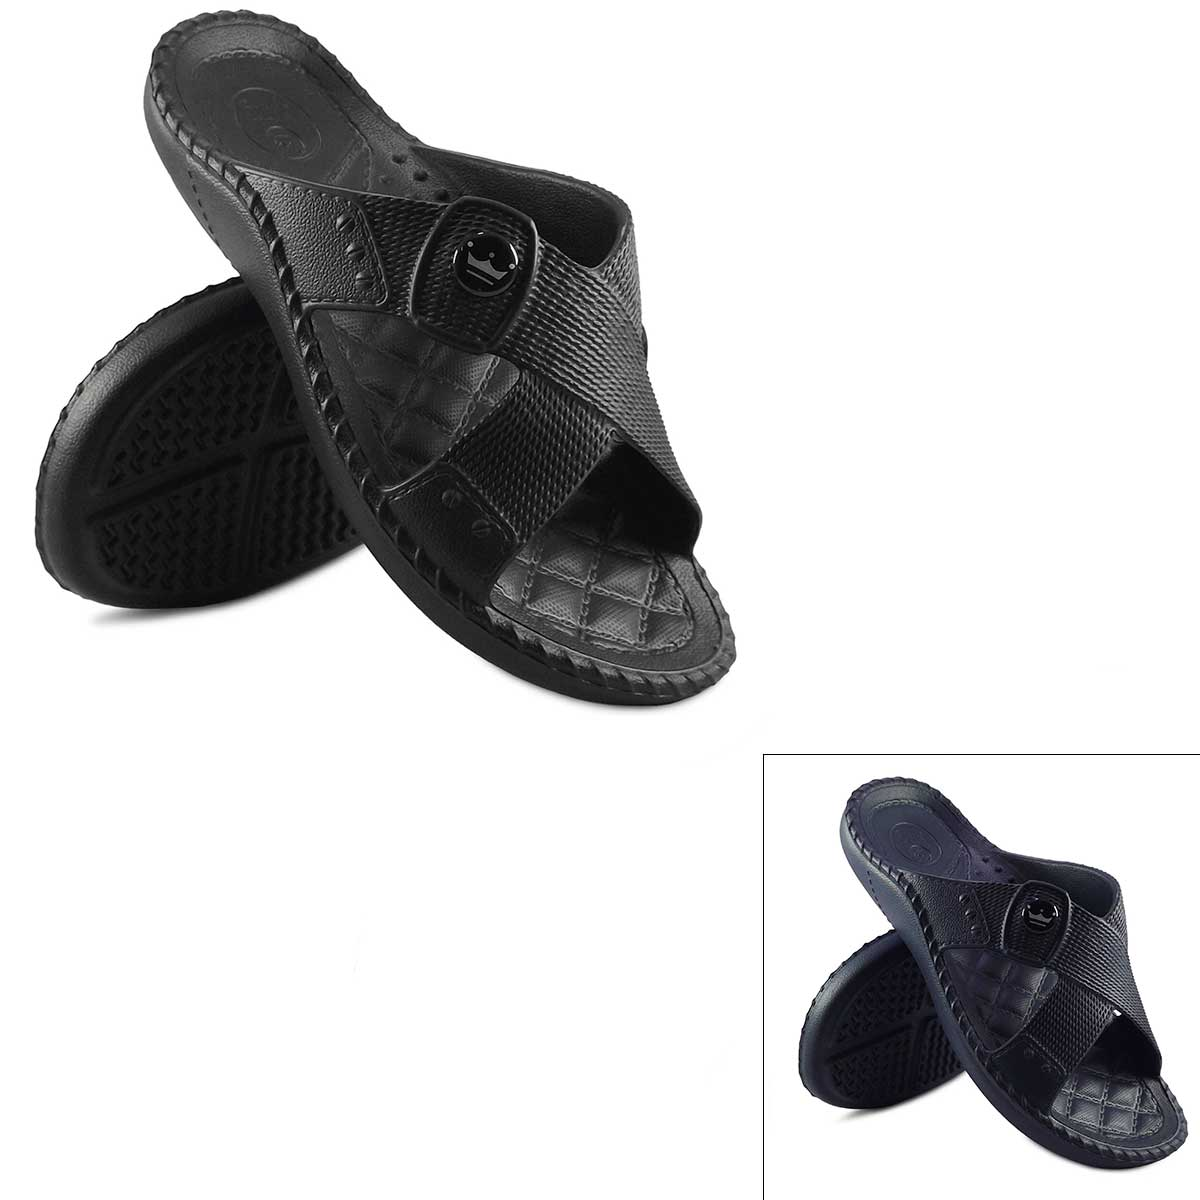 Chinelo Cruzada Masculina King Adulto